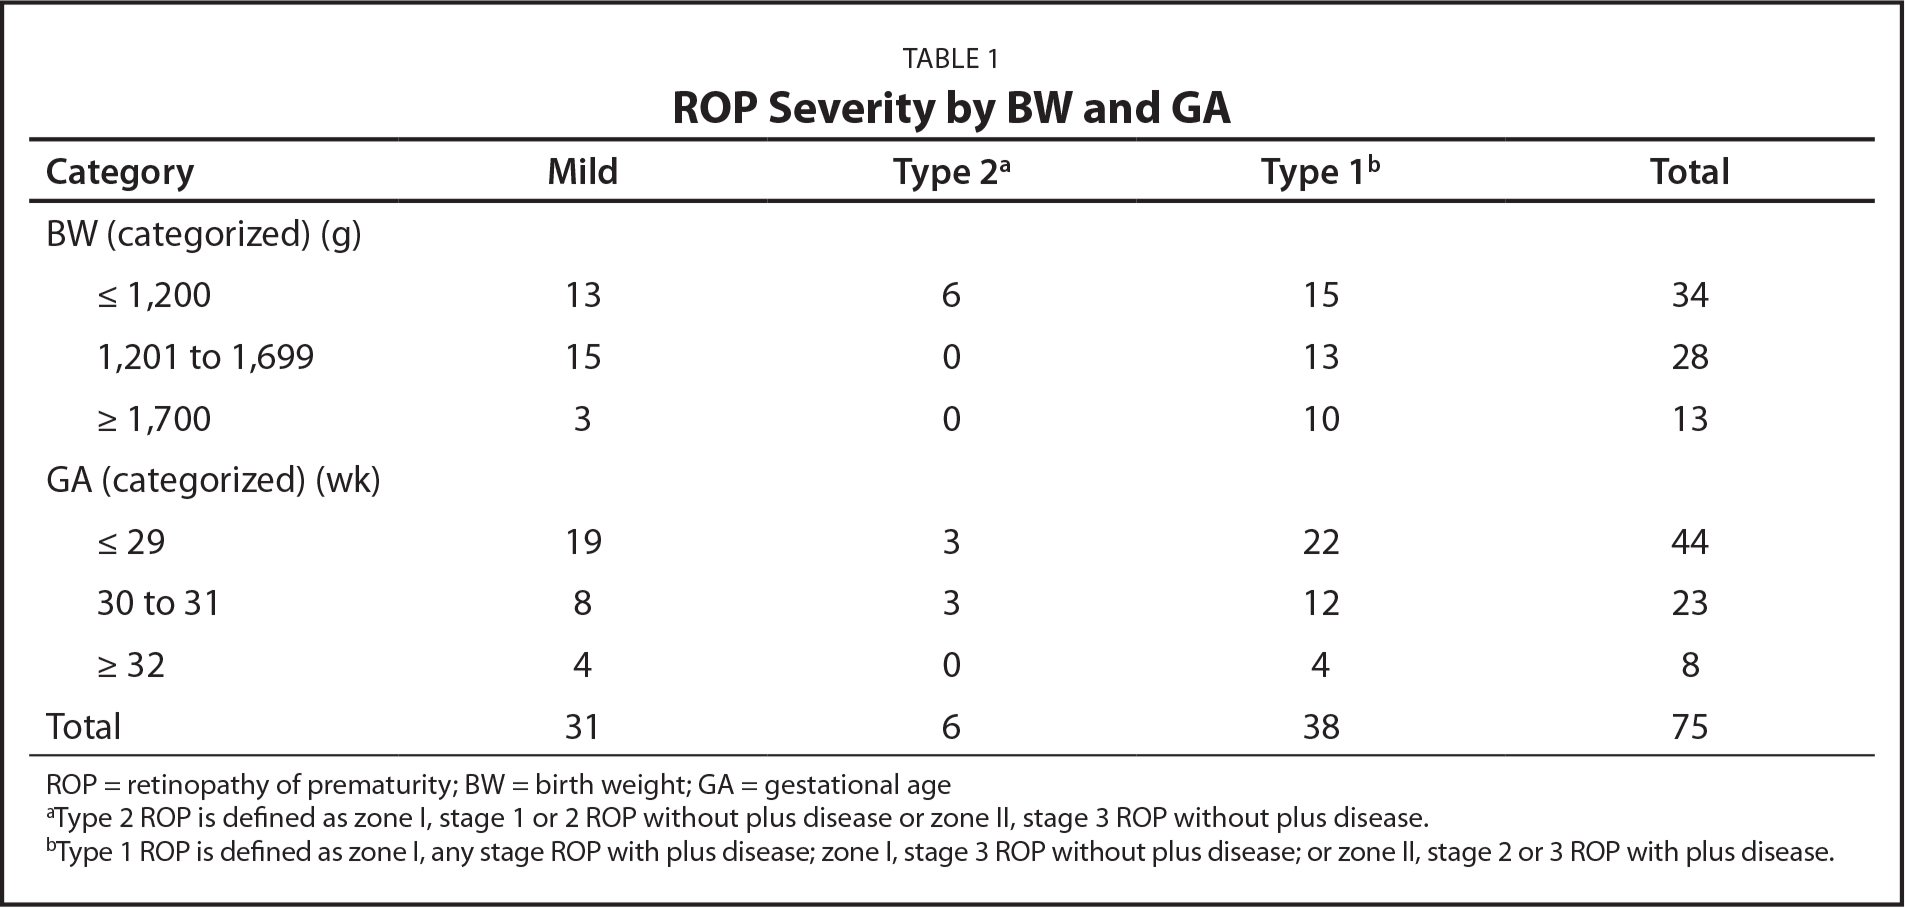 ROP Severity by BW and GA